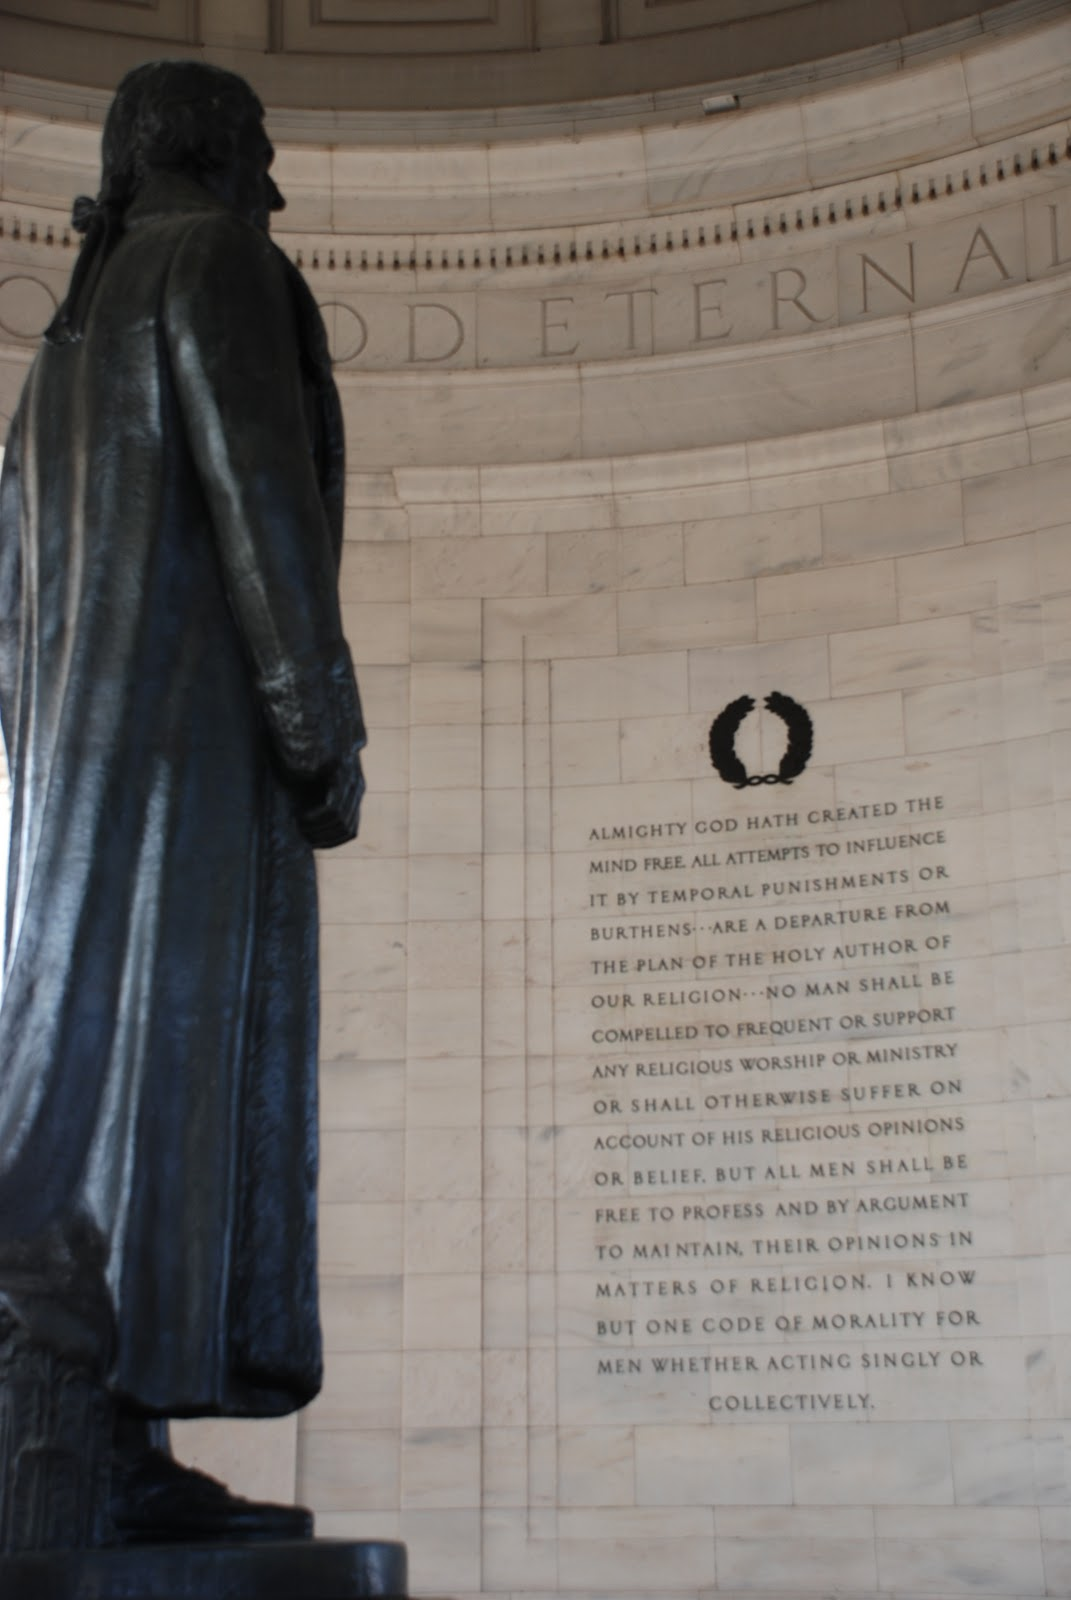 egnorance  jefferson memorial violation of wall of separation between church and state in quote from virginia act for establishing religious dom written by author